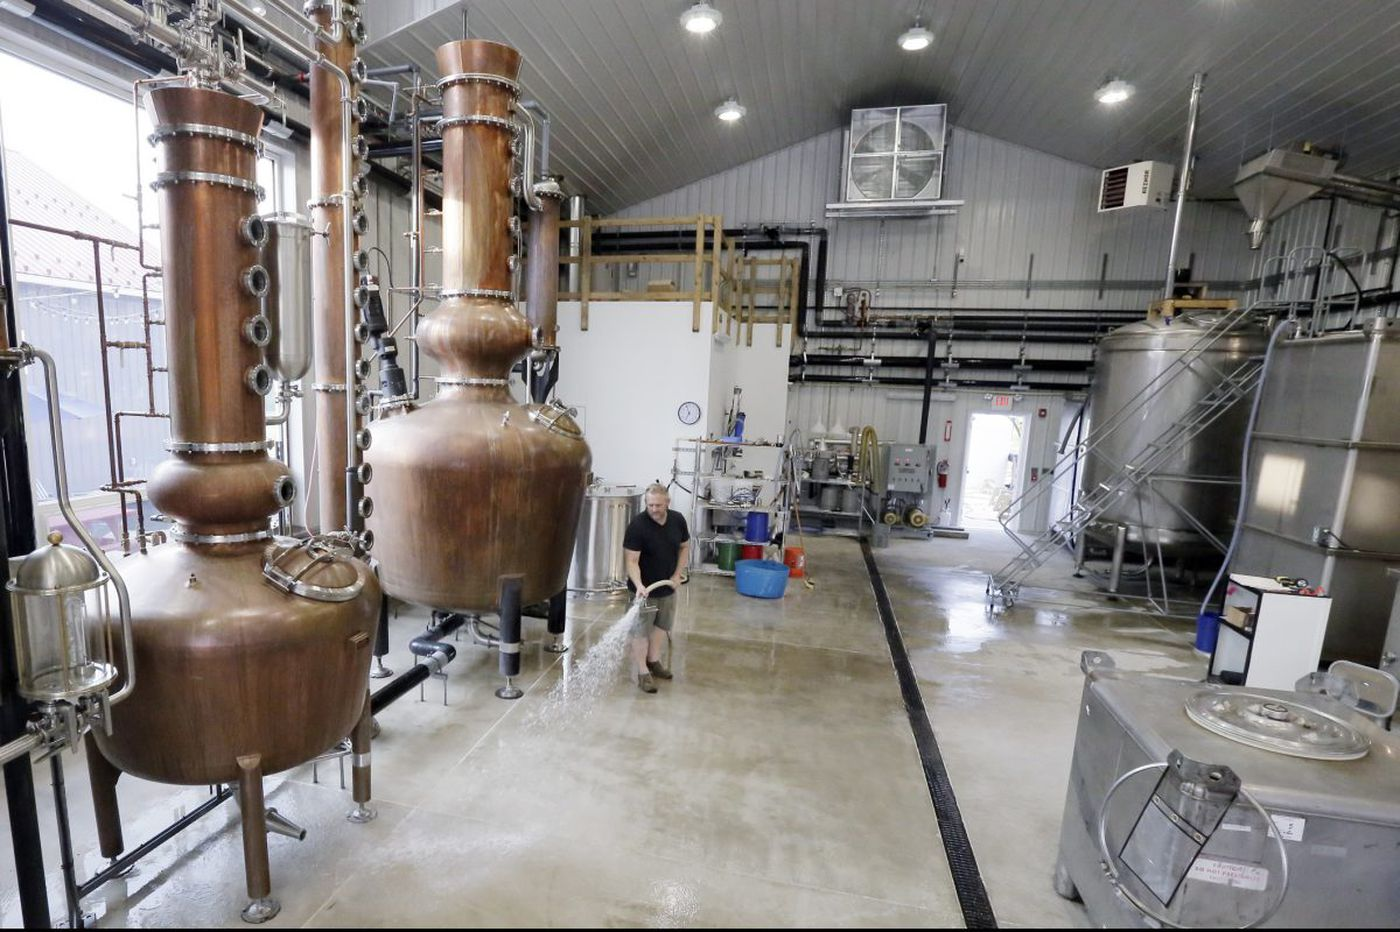 Farm-to-bottle: Craft distillery making vodka from Jersey sweet potatoes at the Shore